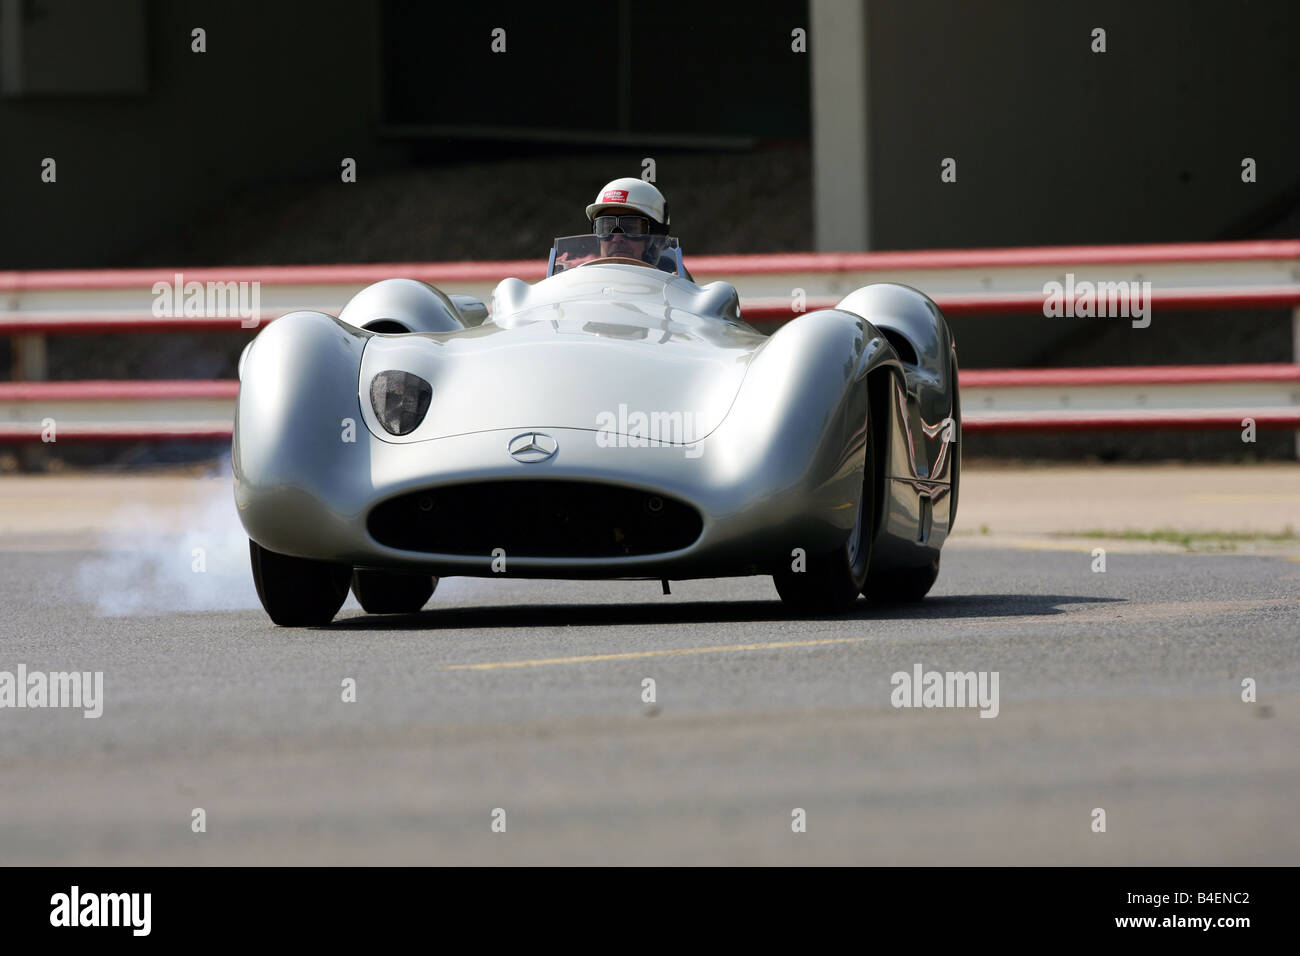 Car, Mercedes W 196 Stromlinie, Model Year 1954, Vintage Car, Racing Car,  Silver, Vintage Car, 1950s, Fifties, Racing, Motor Spo